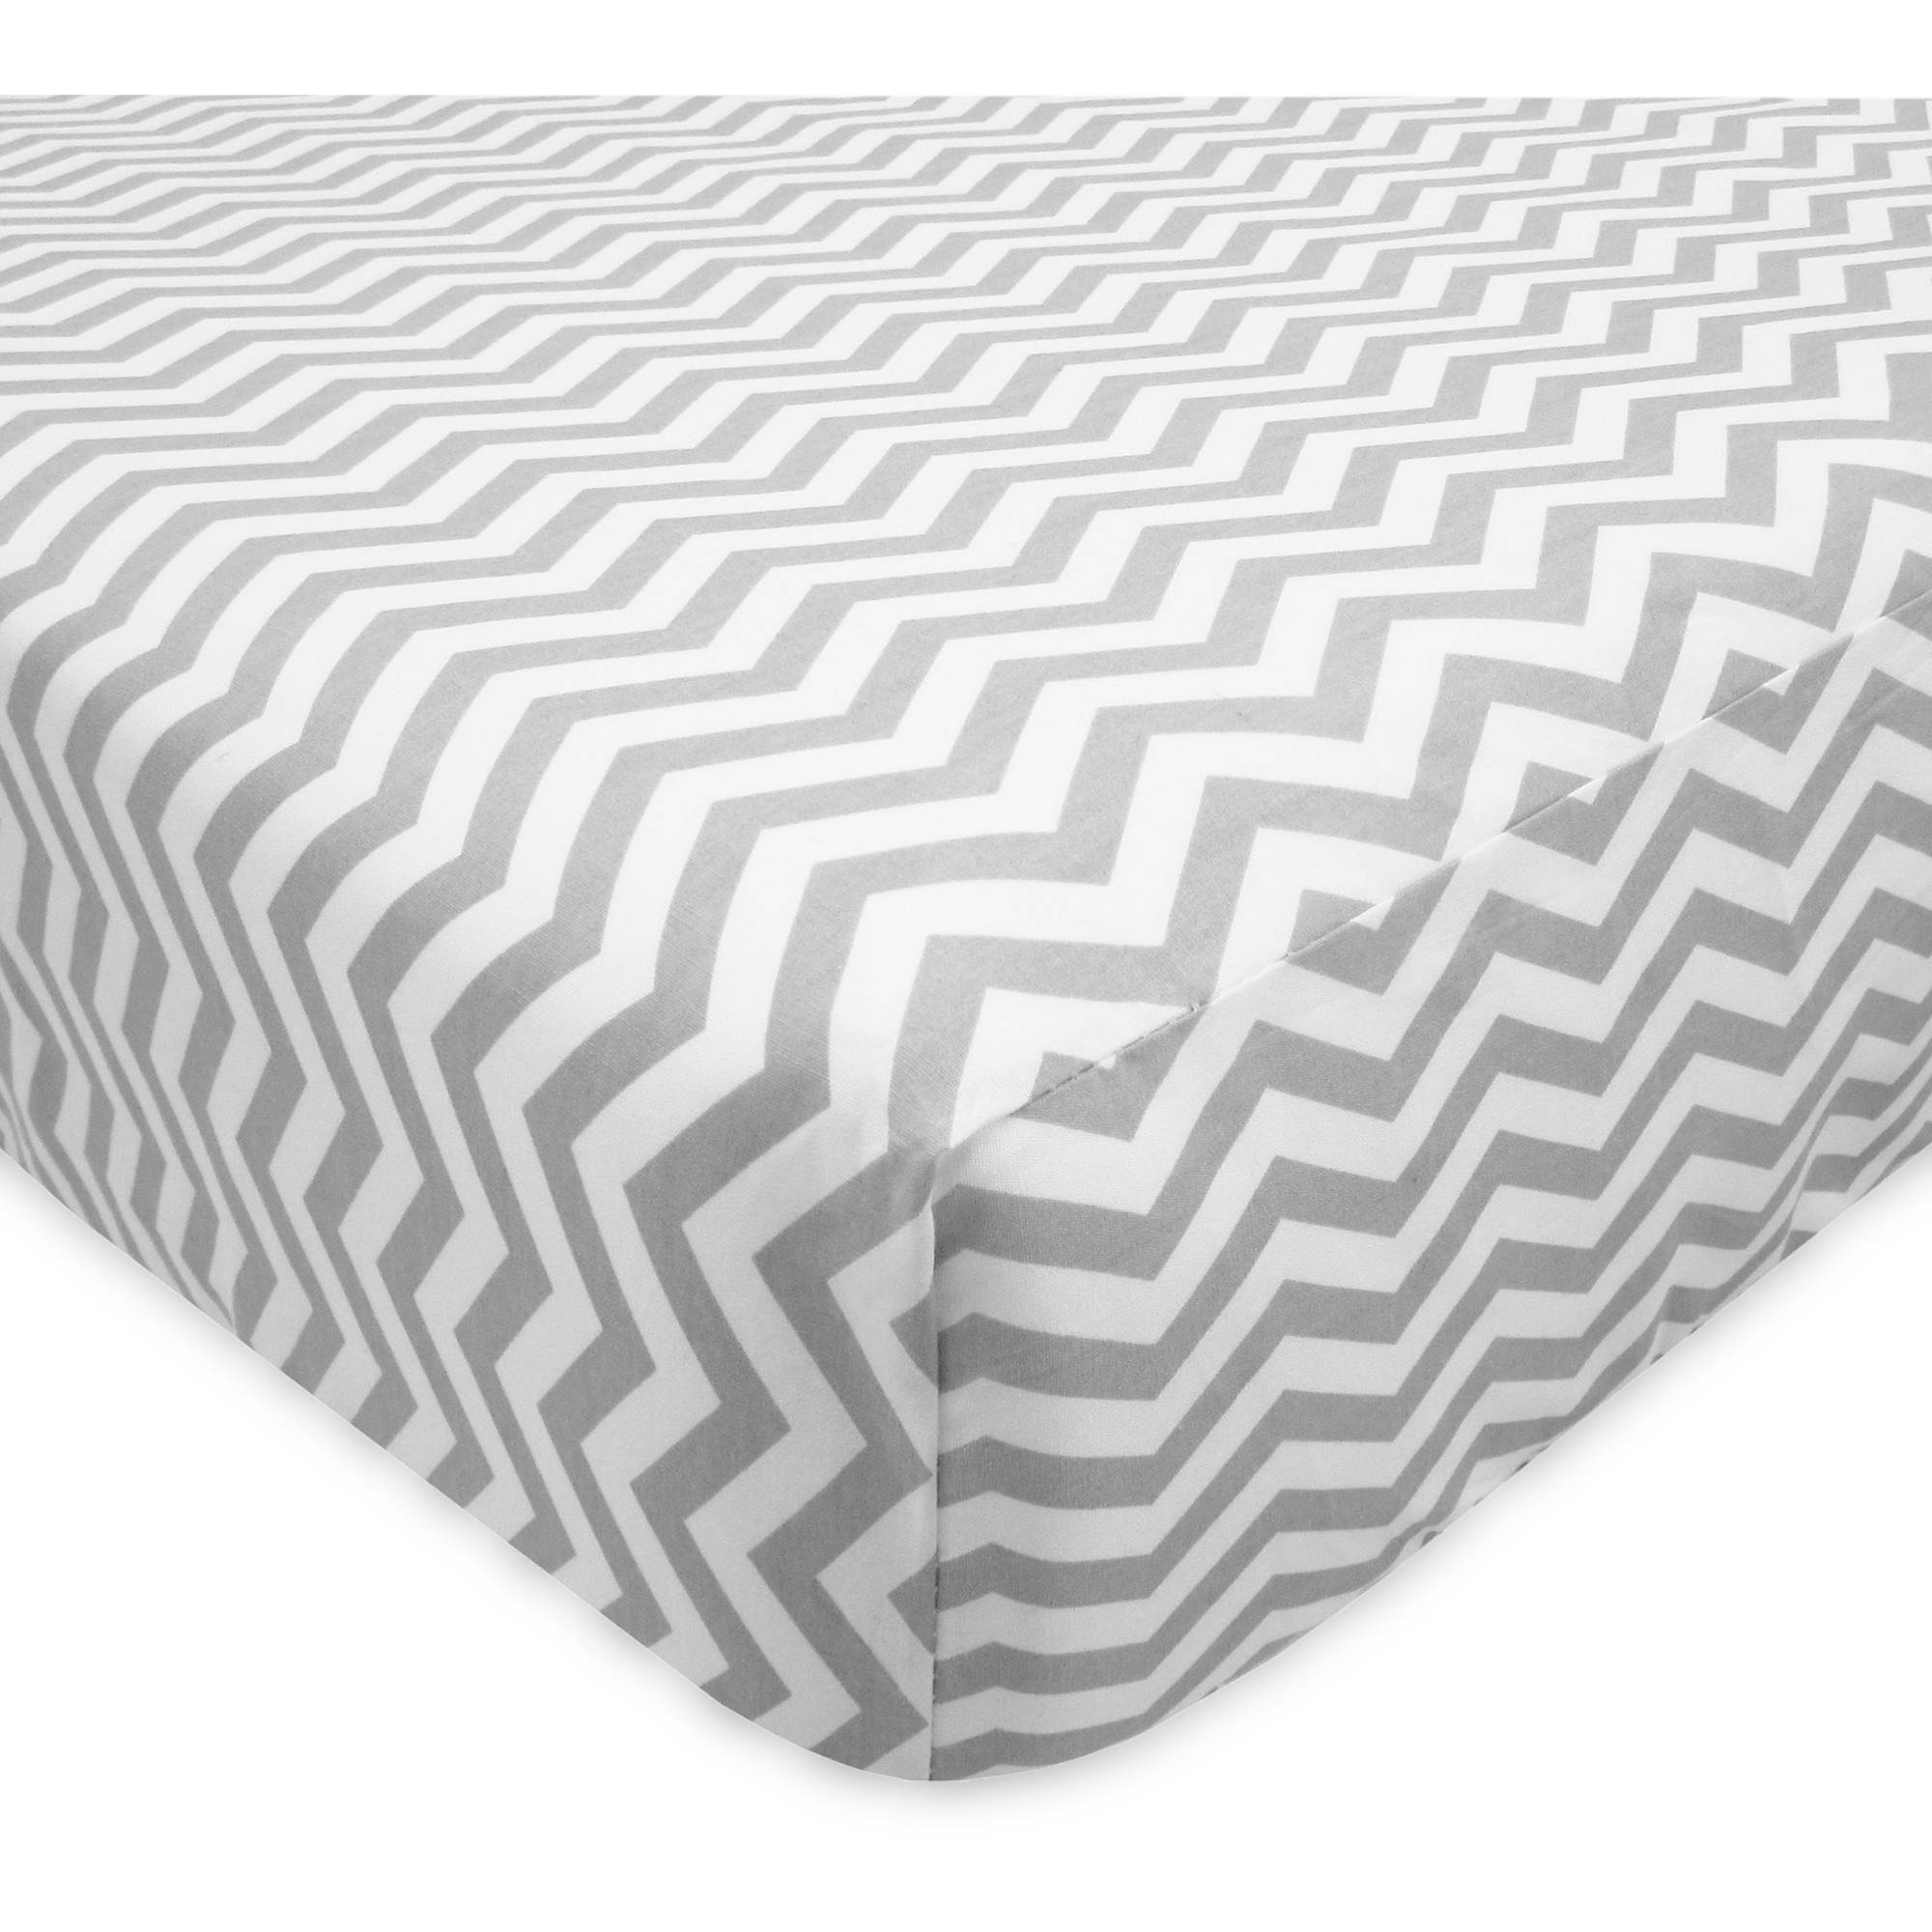 TL Care 100 Percent Cotton Percale Fitted Crib Sheet, Gray Zigzag